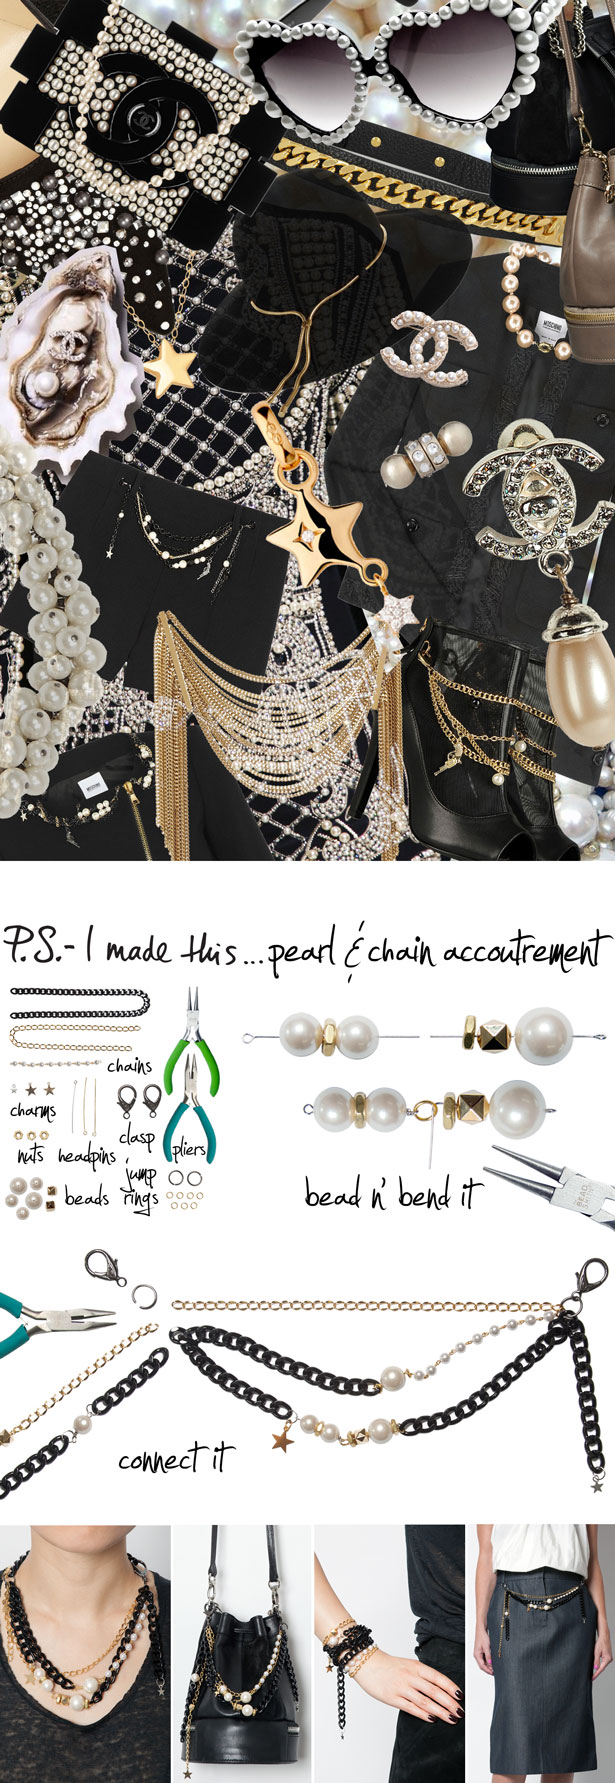 10.02.14_Pearl-Accoutrement-MERGED